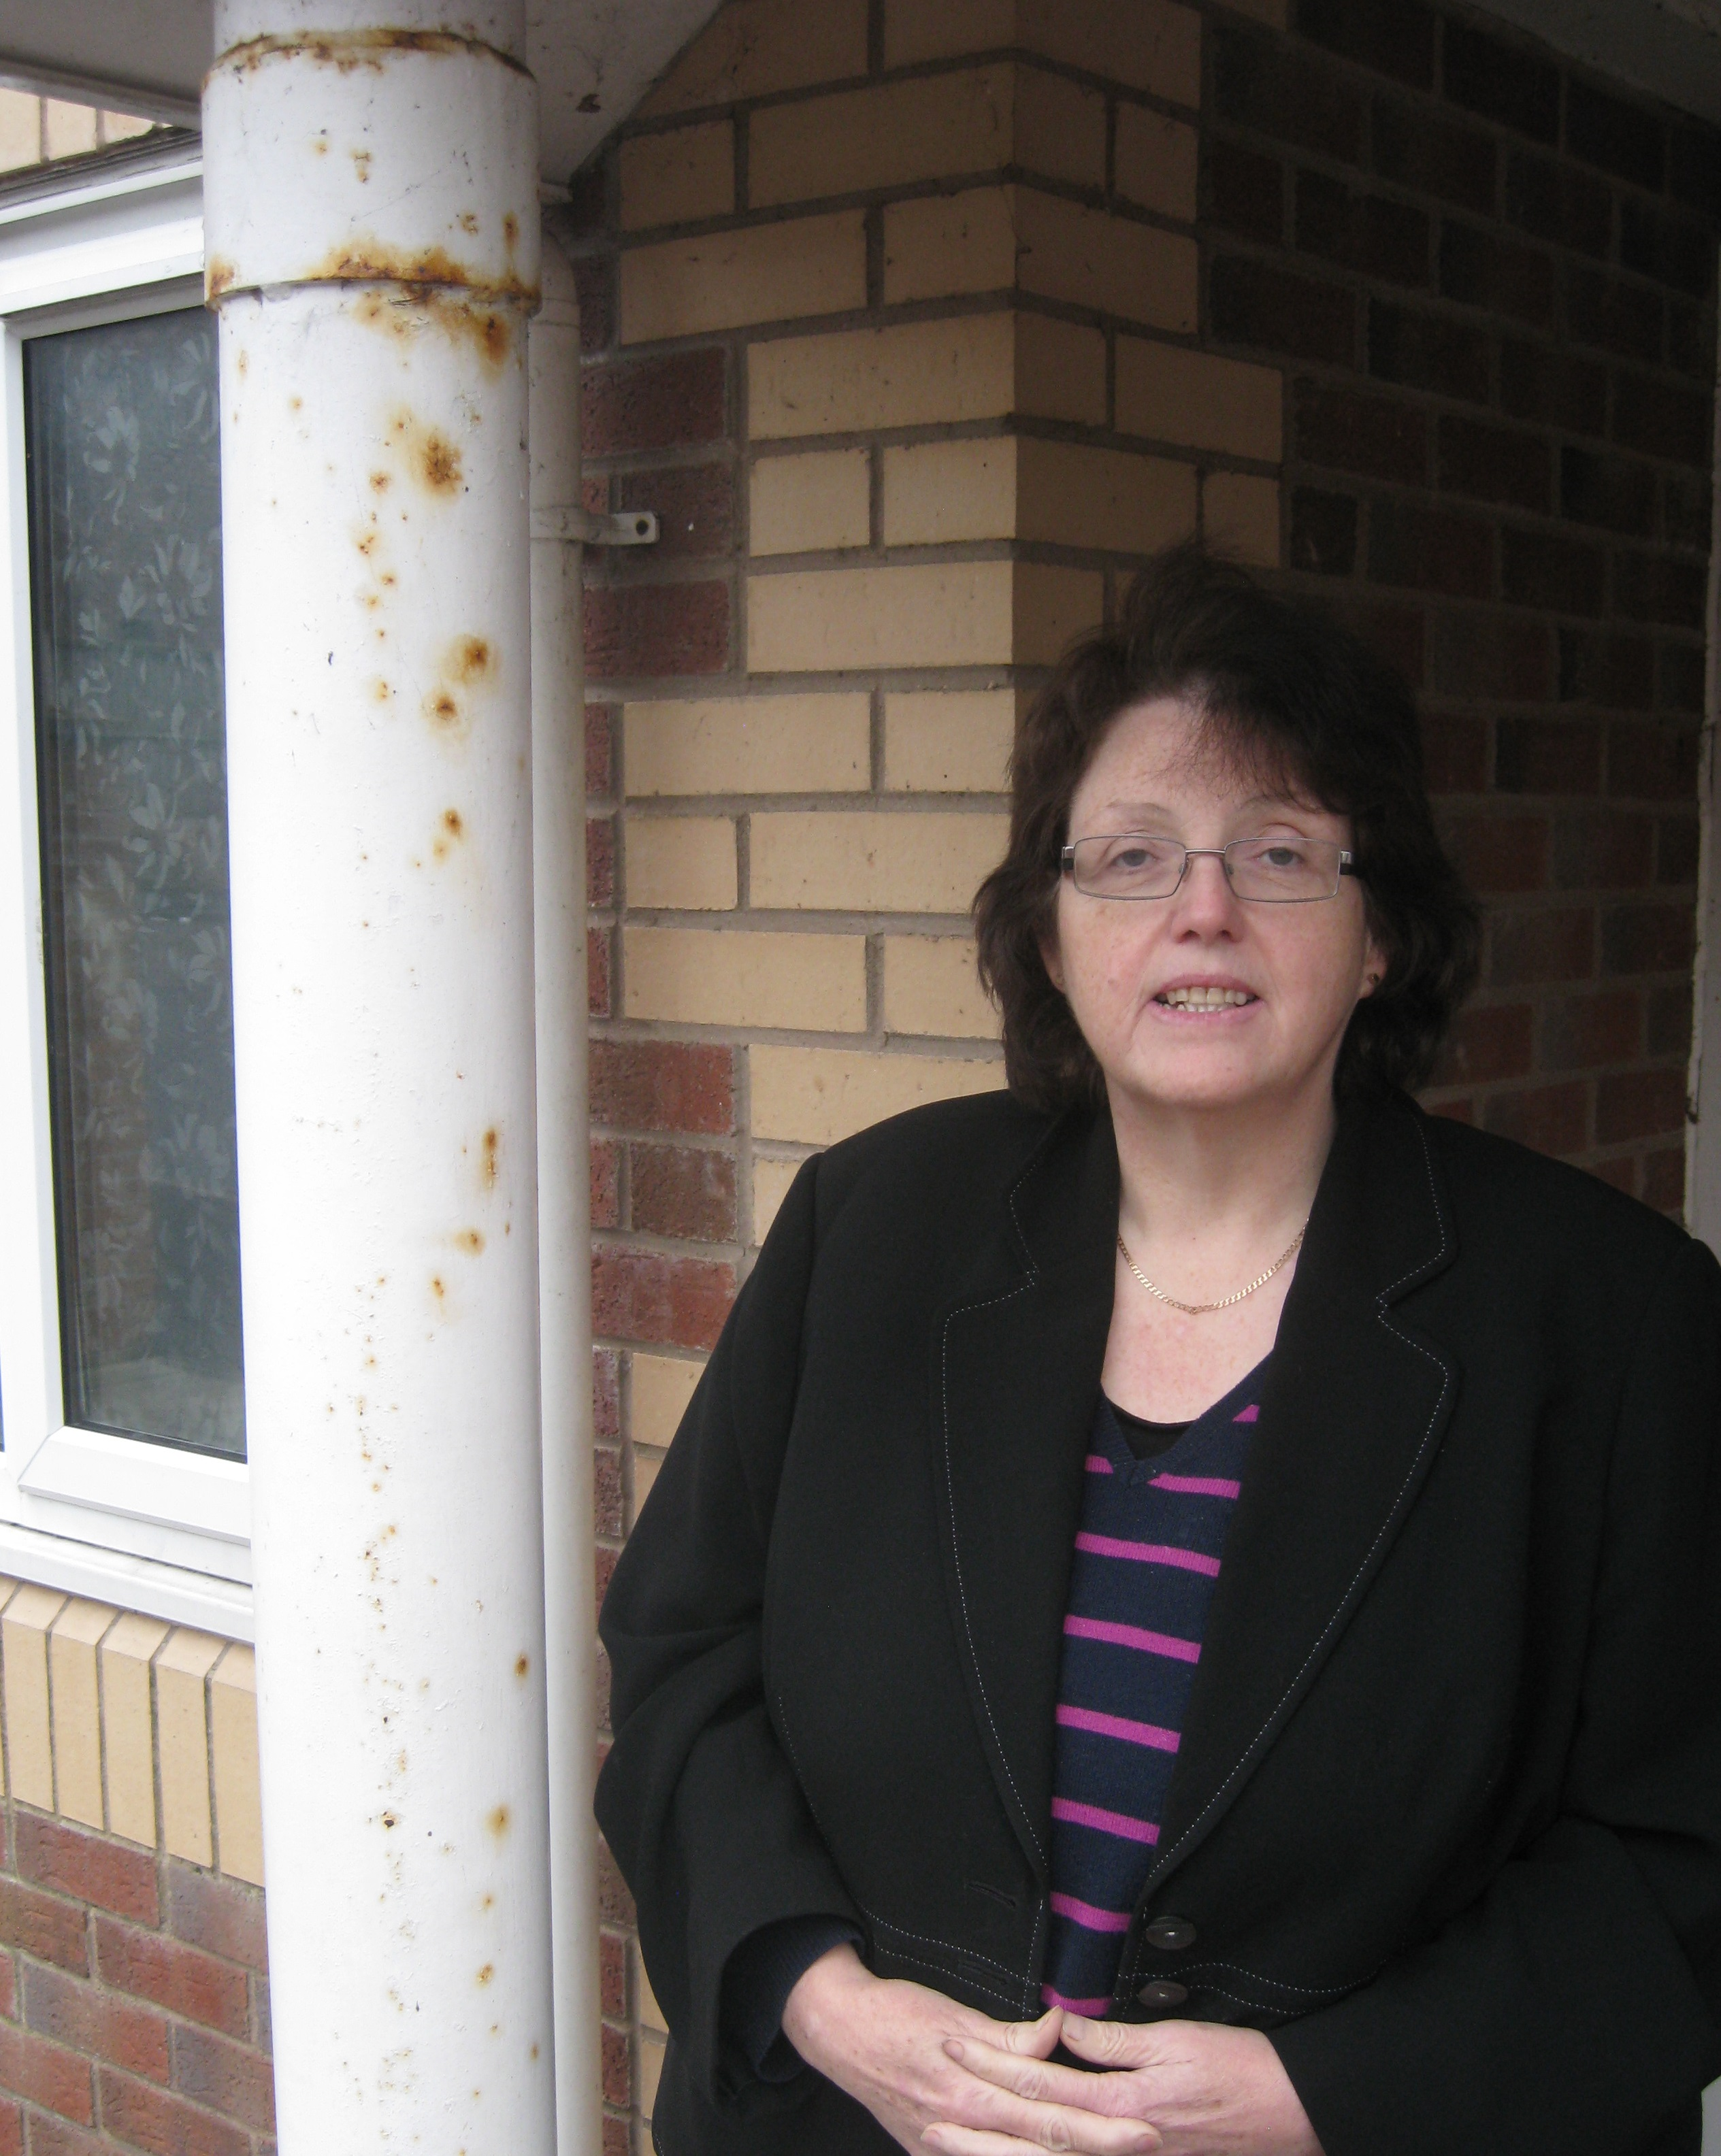 Rosie_Cooper_MP_visits_Quays_Apartments_in_Burscough_to_see_for_herself_the_lack_of_maintenance_at_the_front_entrance.JPG